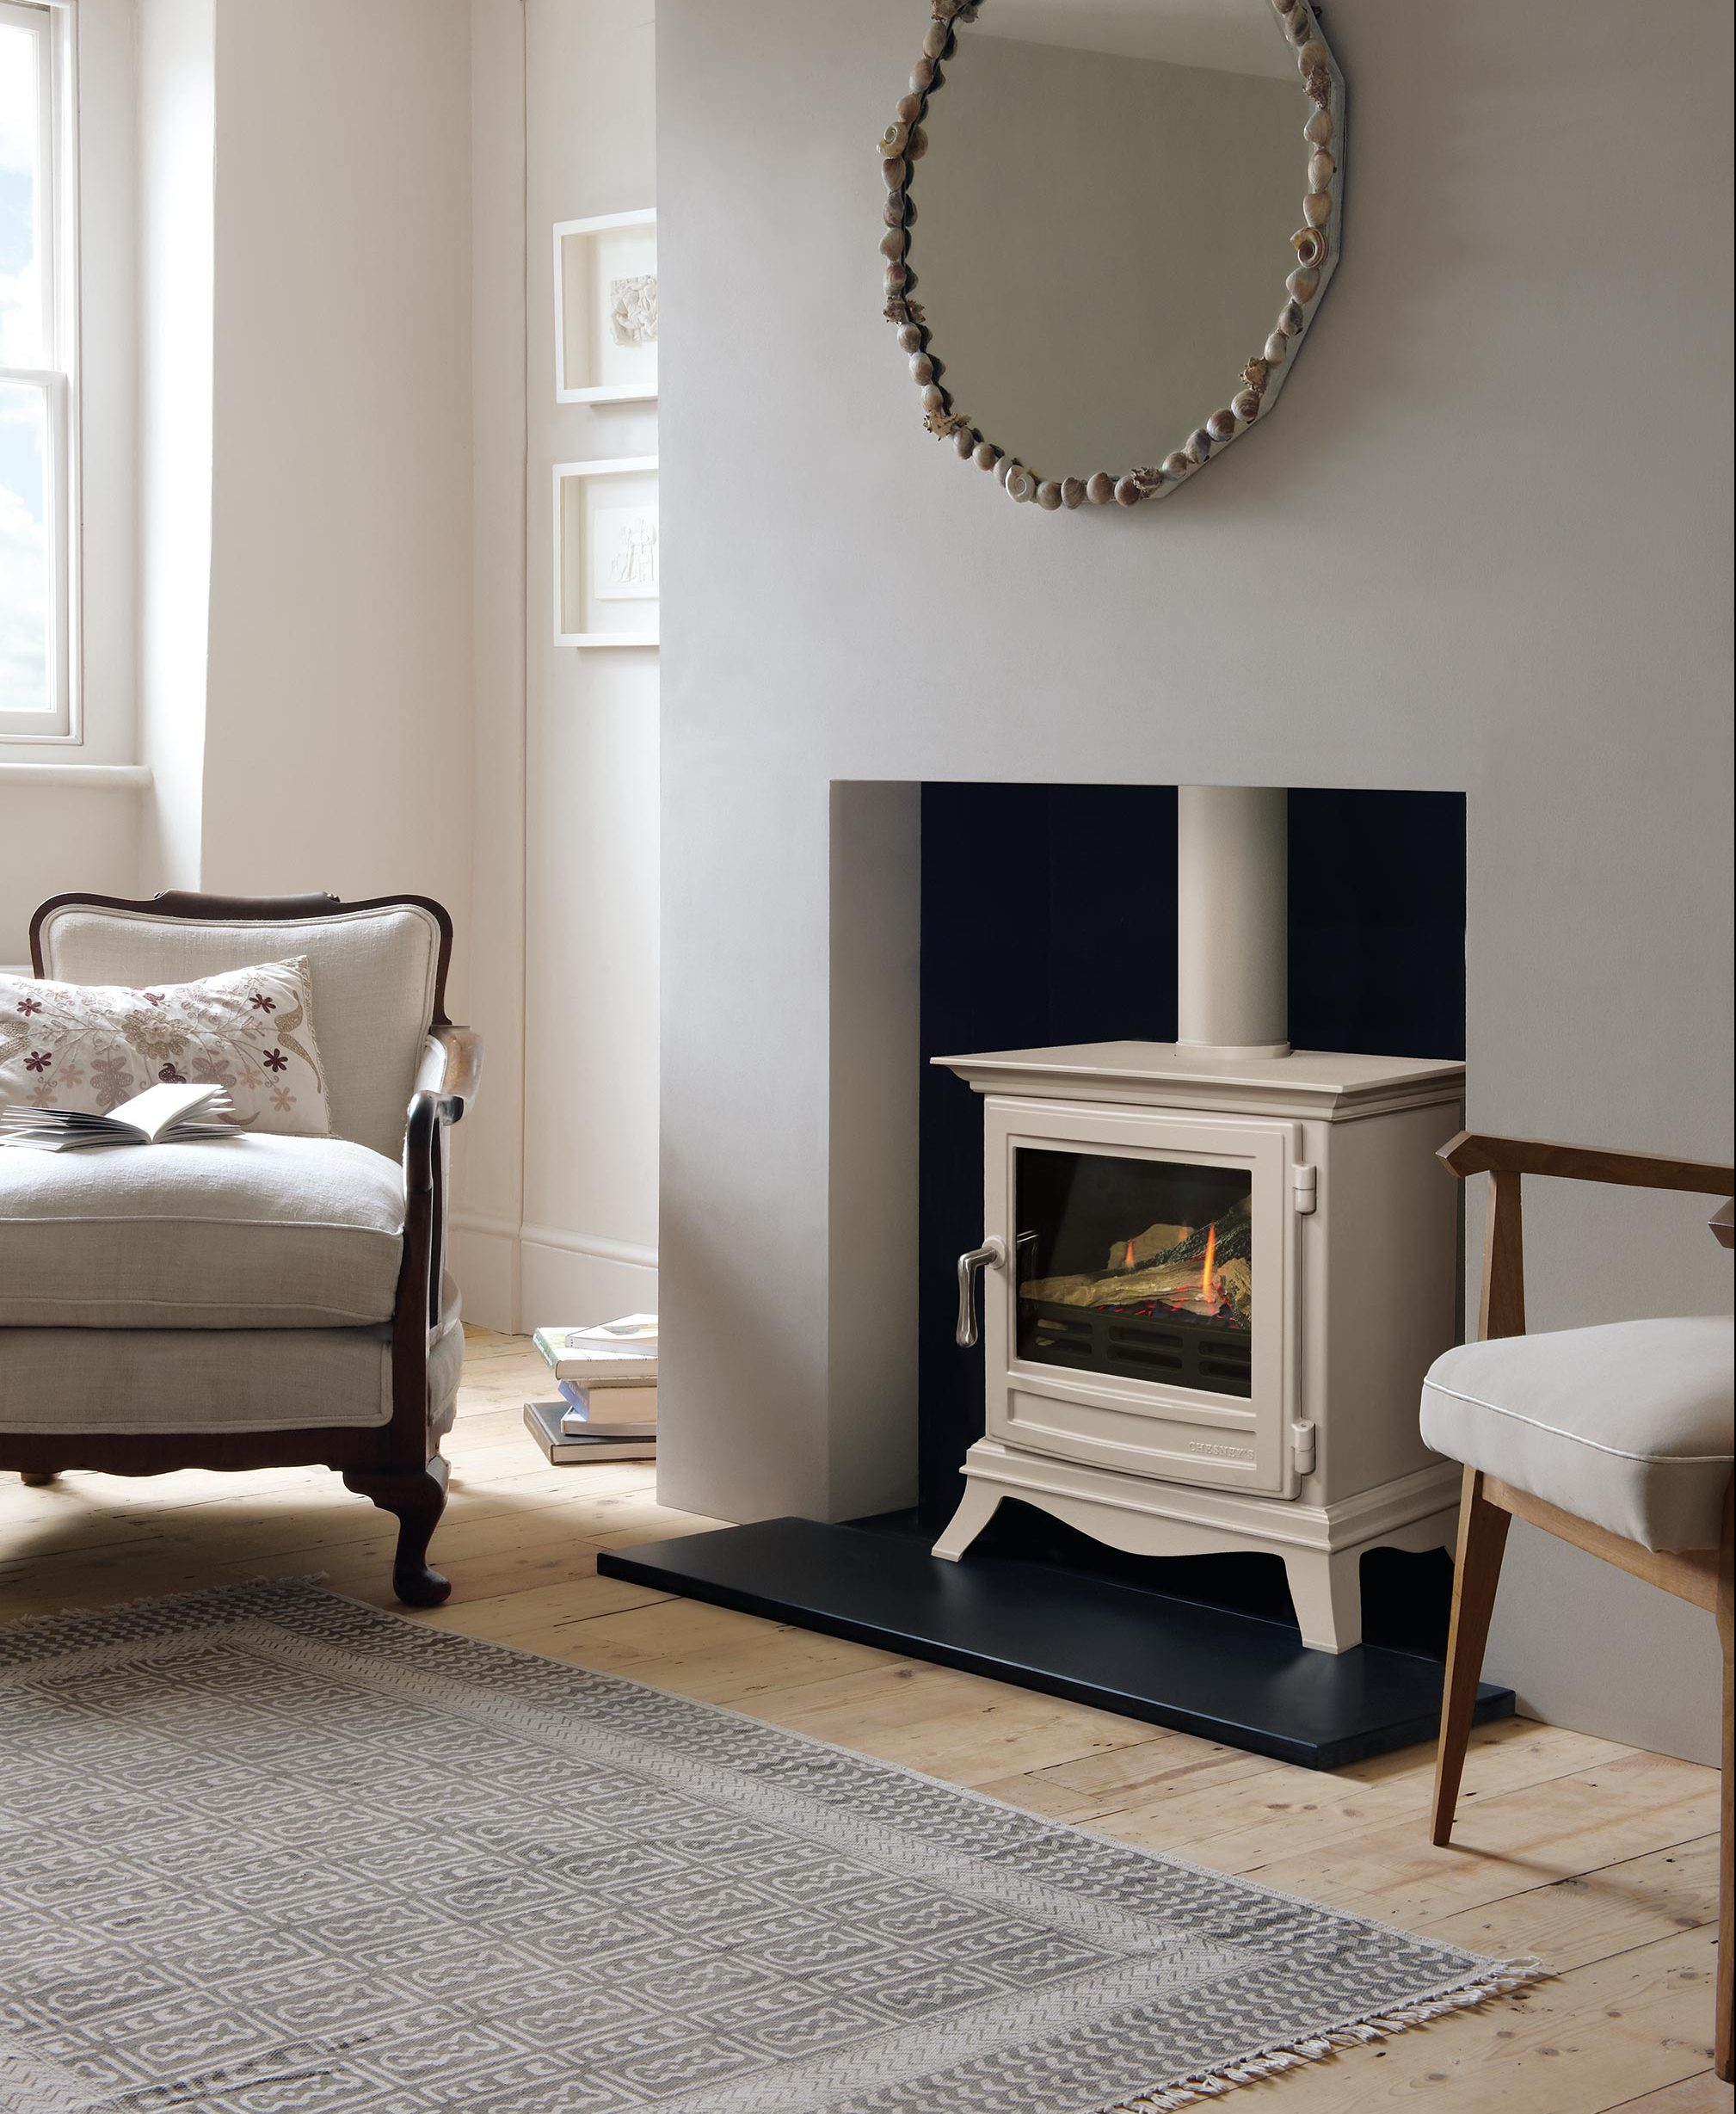 chesney beaumont gas stove